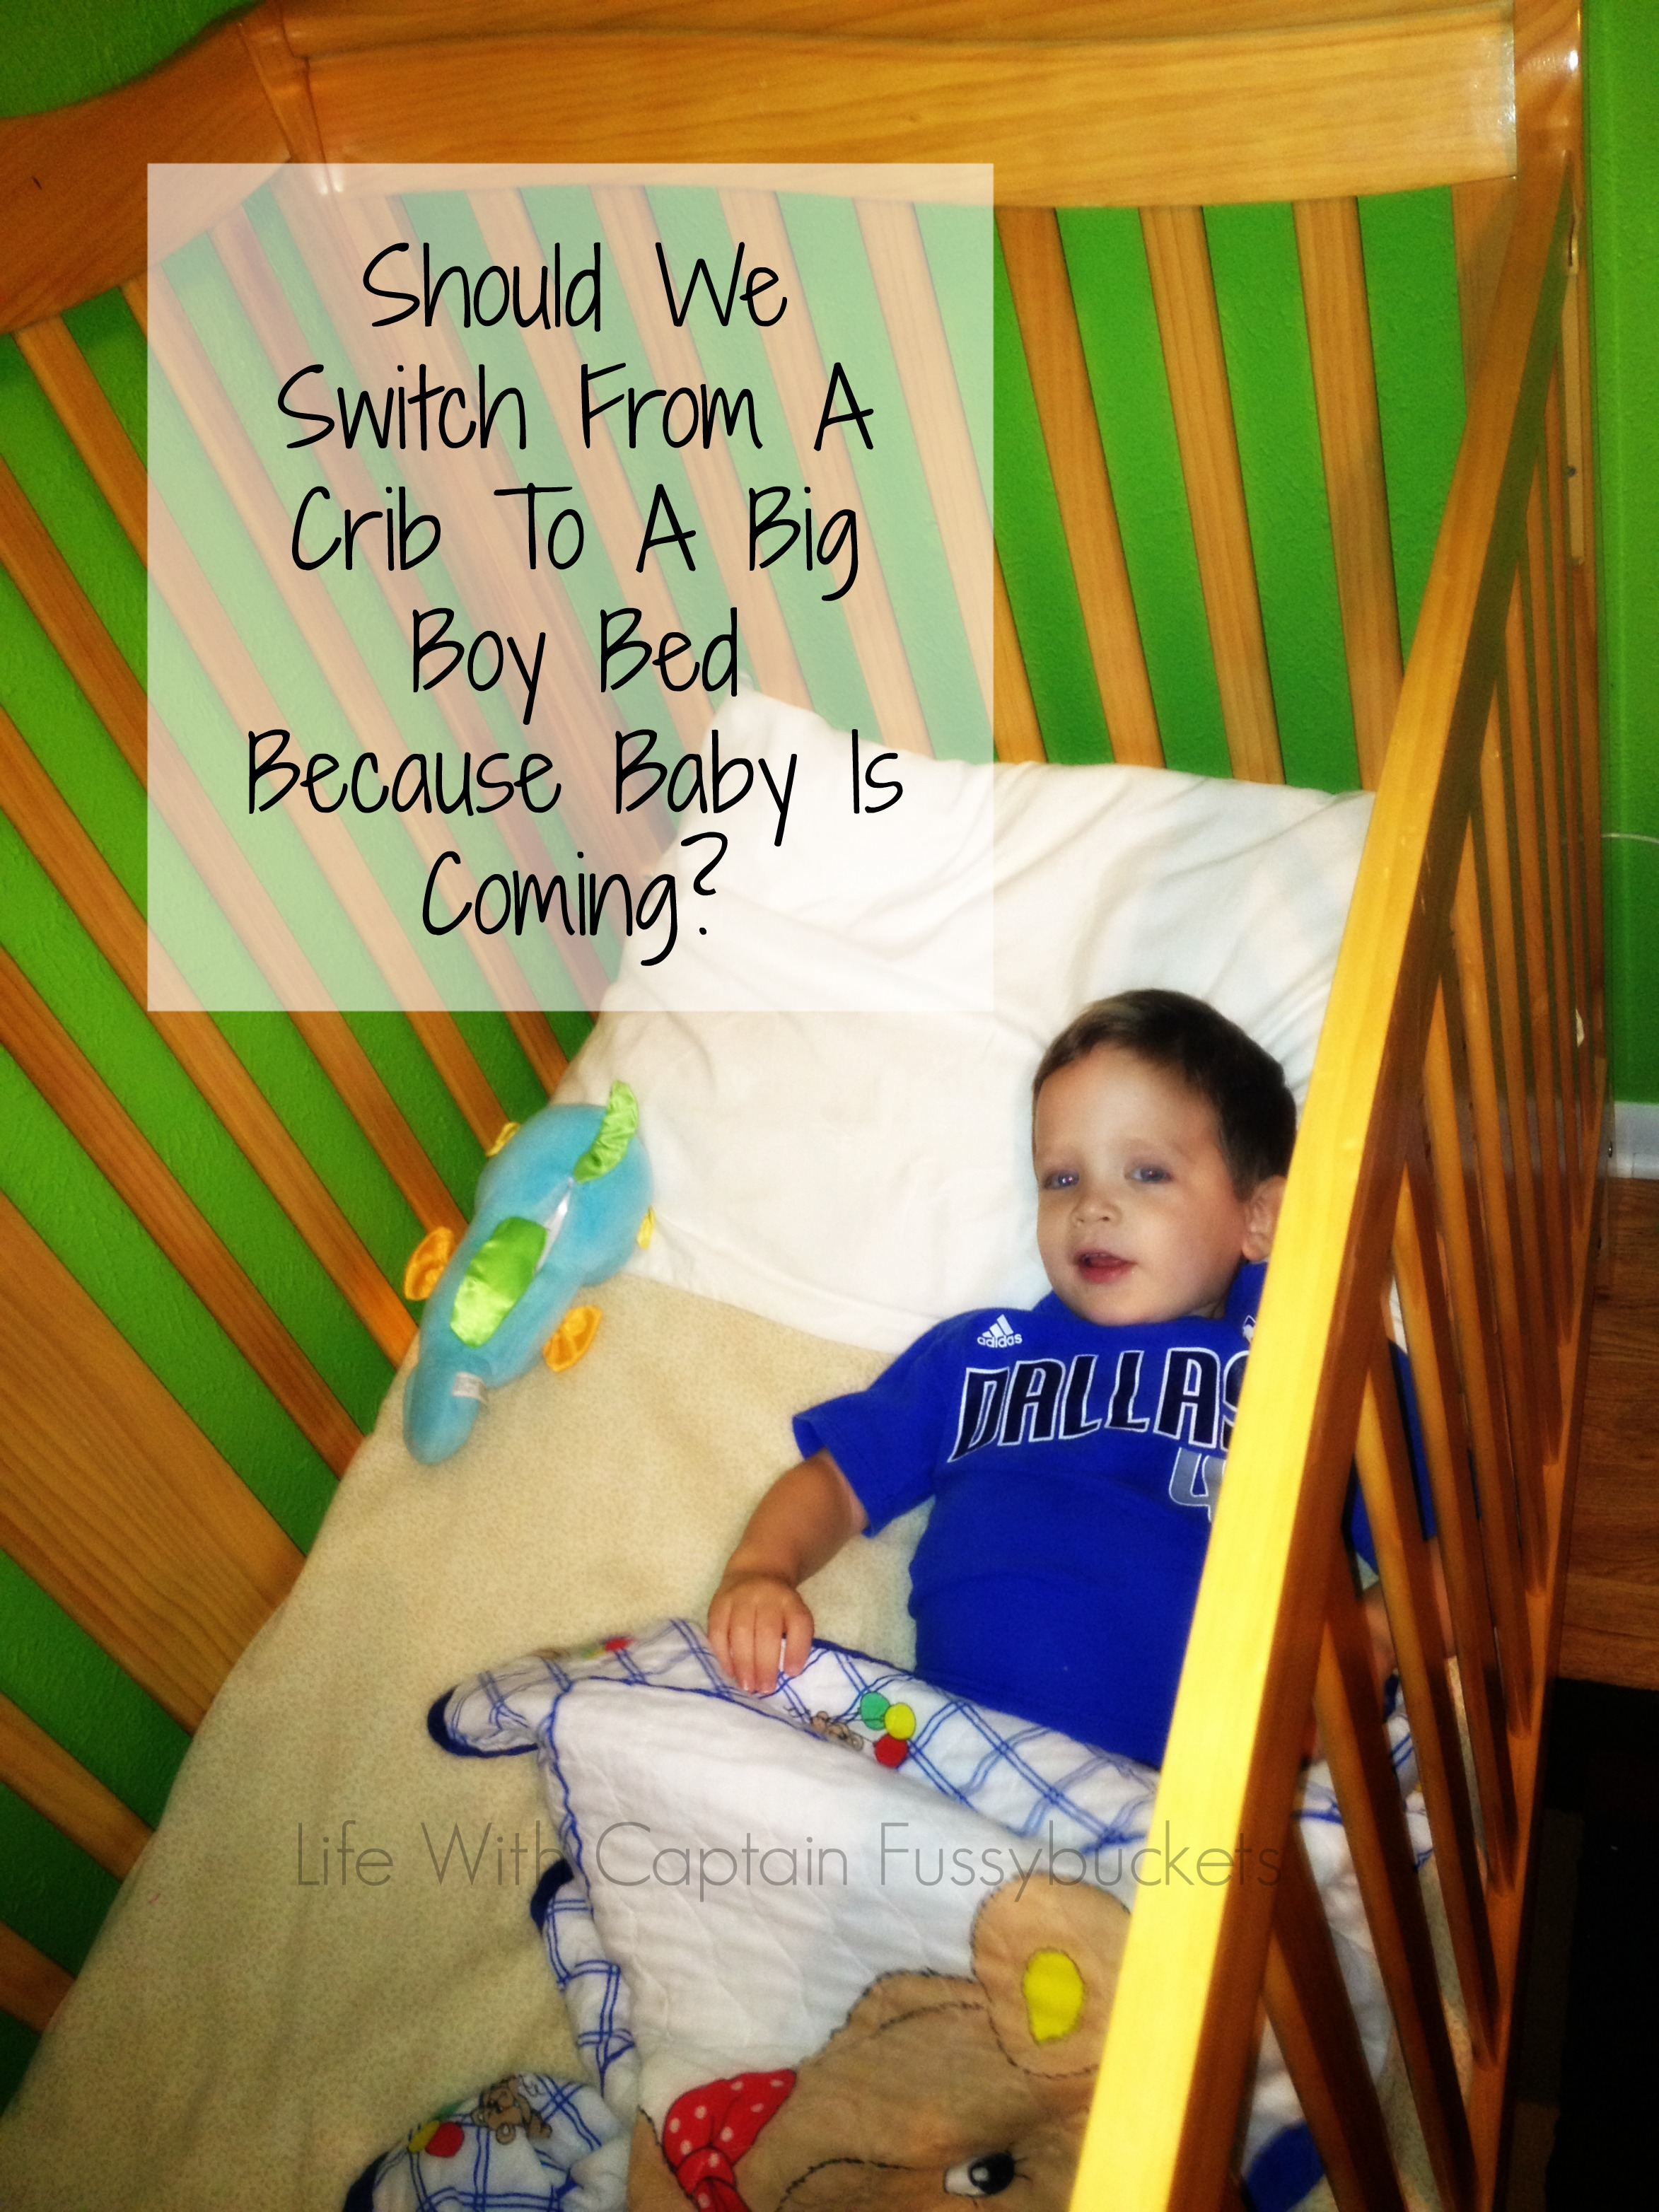 Should We Rush To A Big Boy Bed Just Because Baby Is Coming